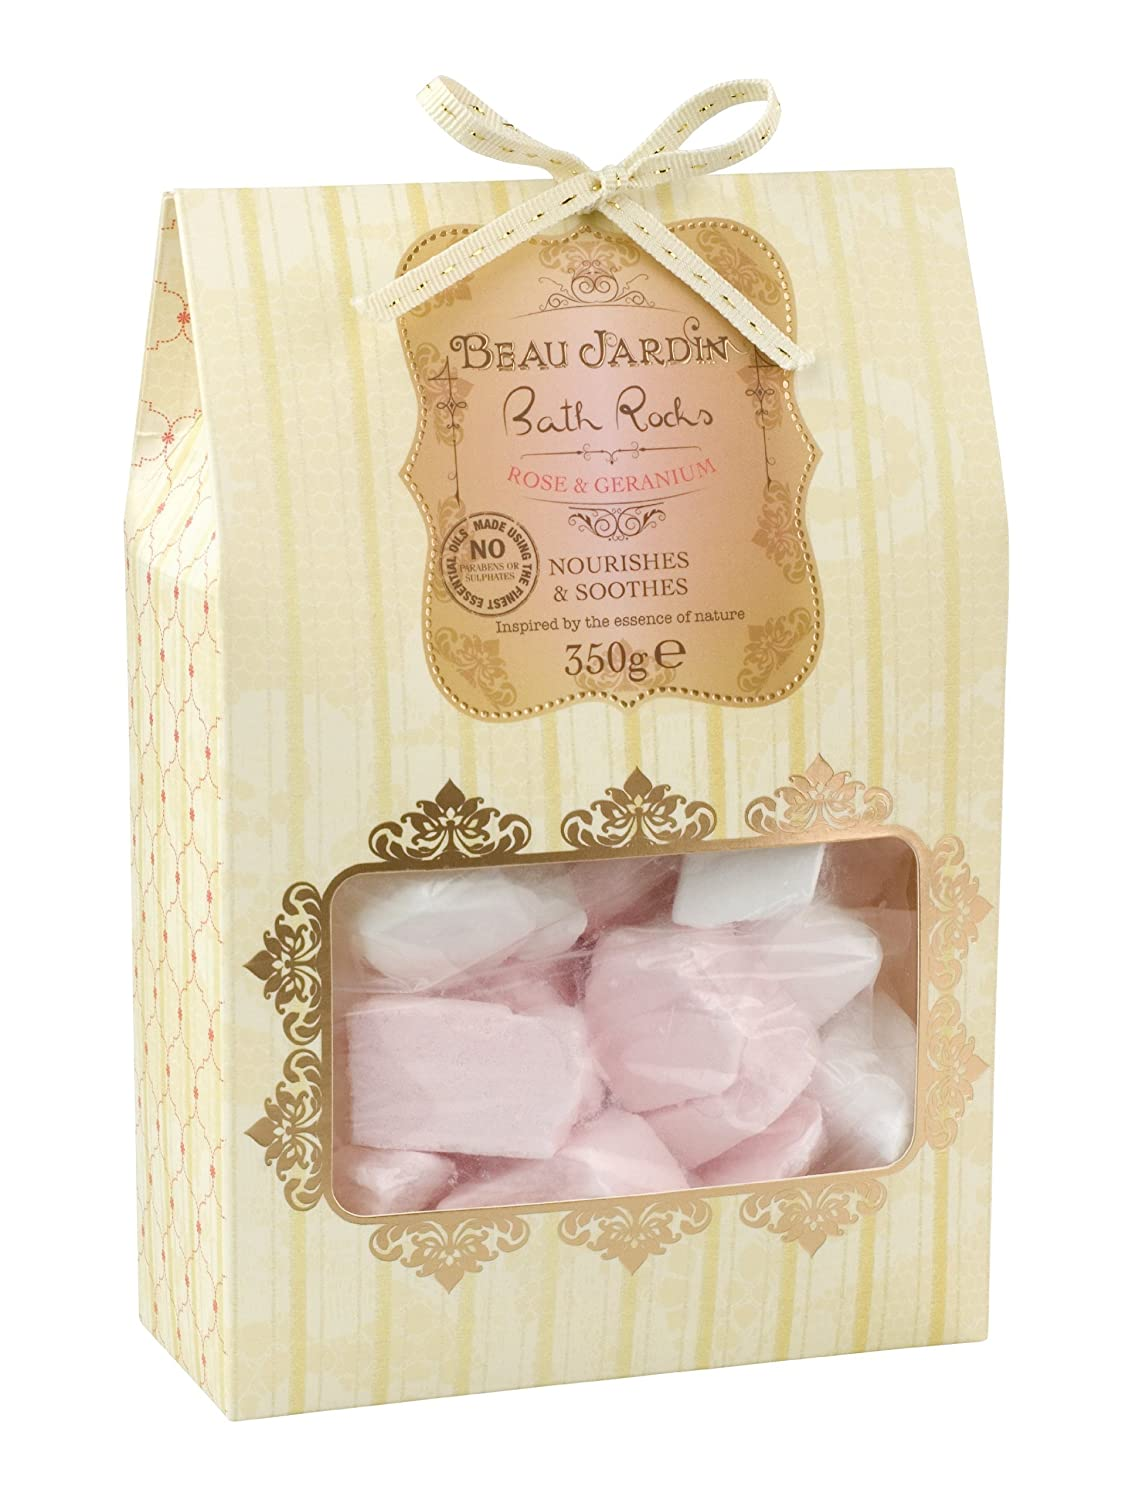 Amazon.com: Beau Jardin Rose & Geranium Bath Rocks: Beauty